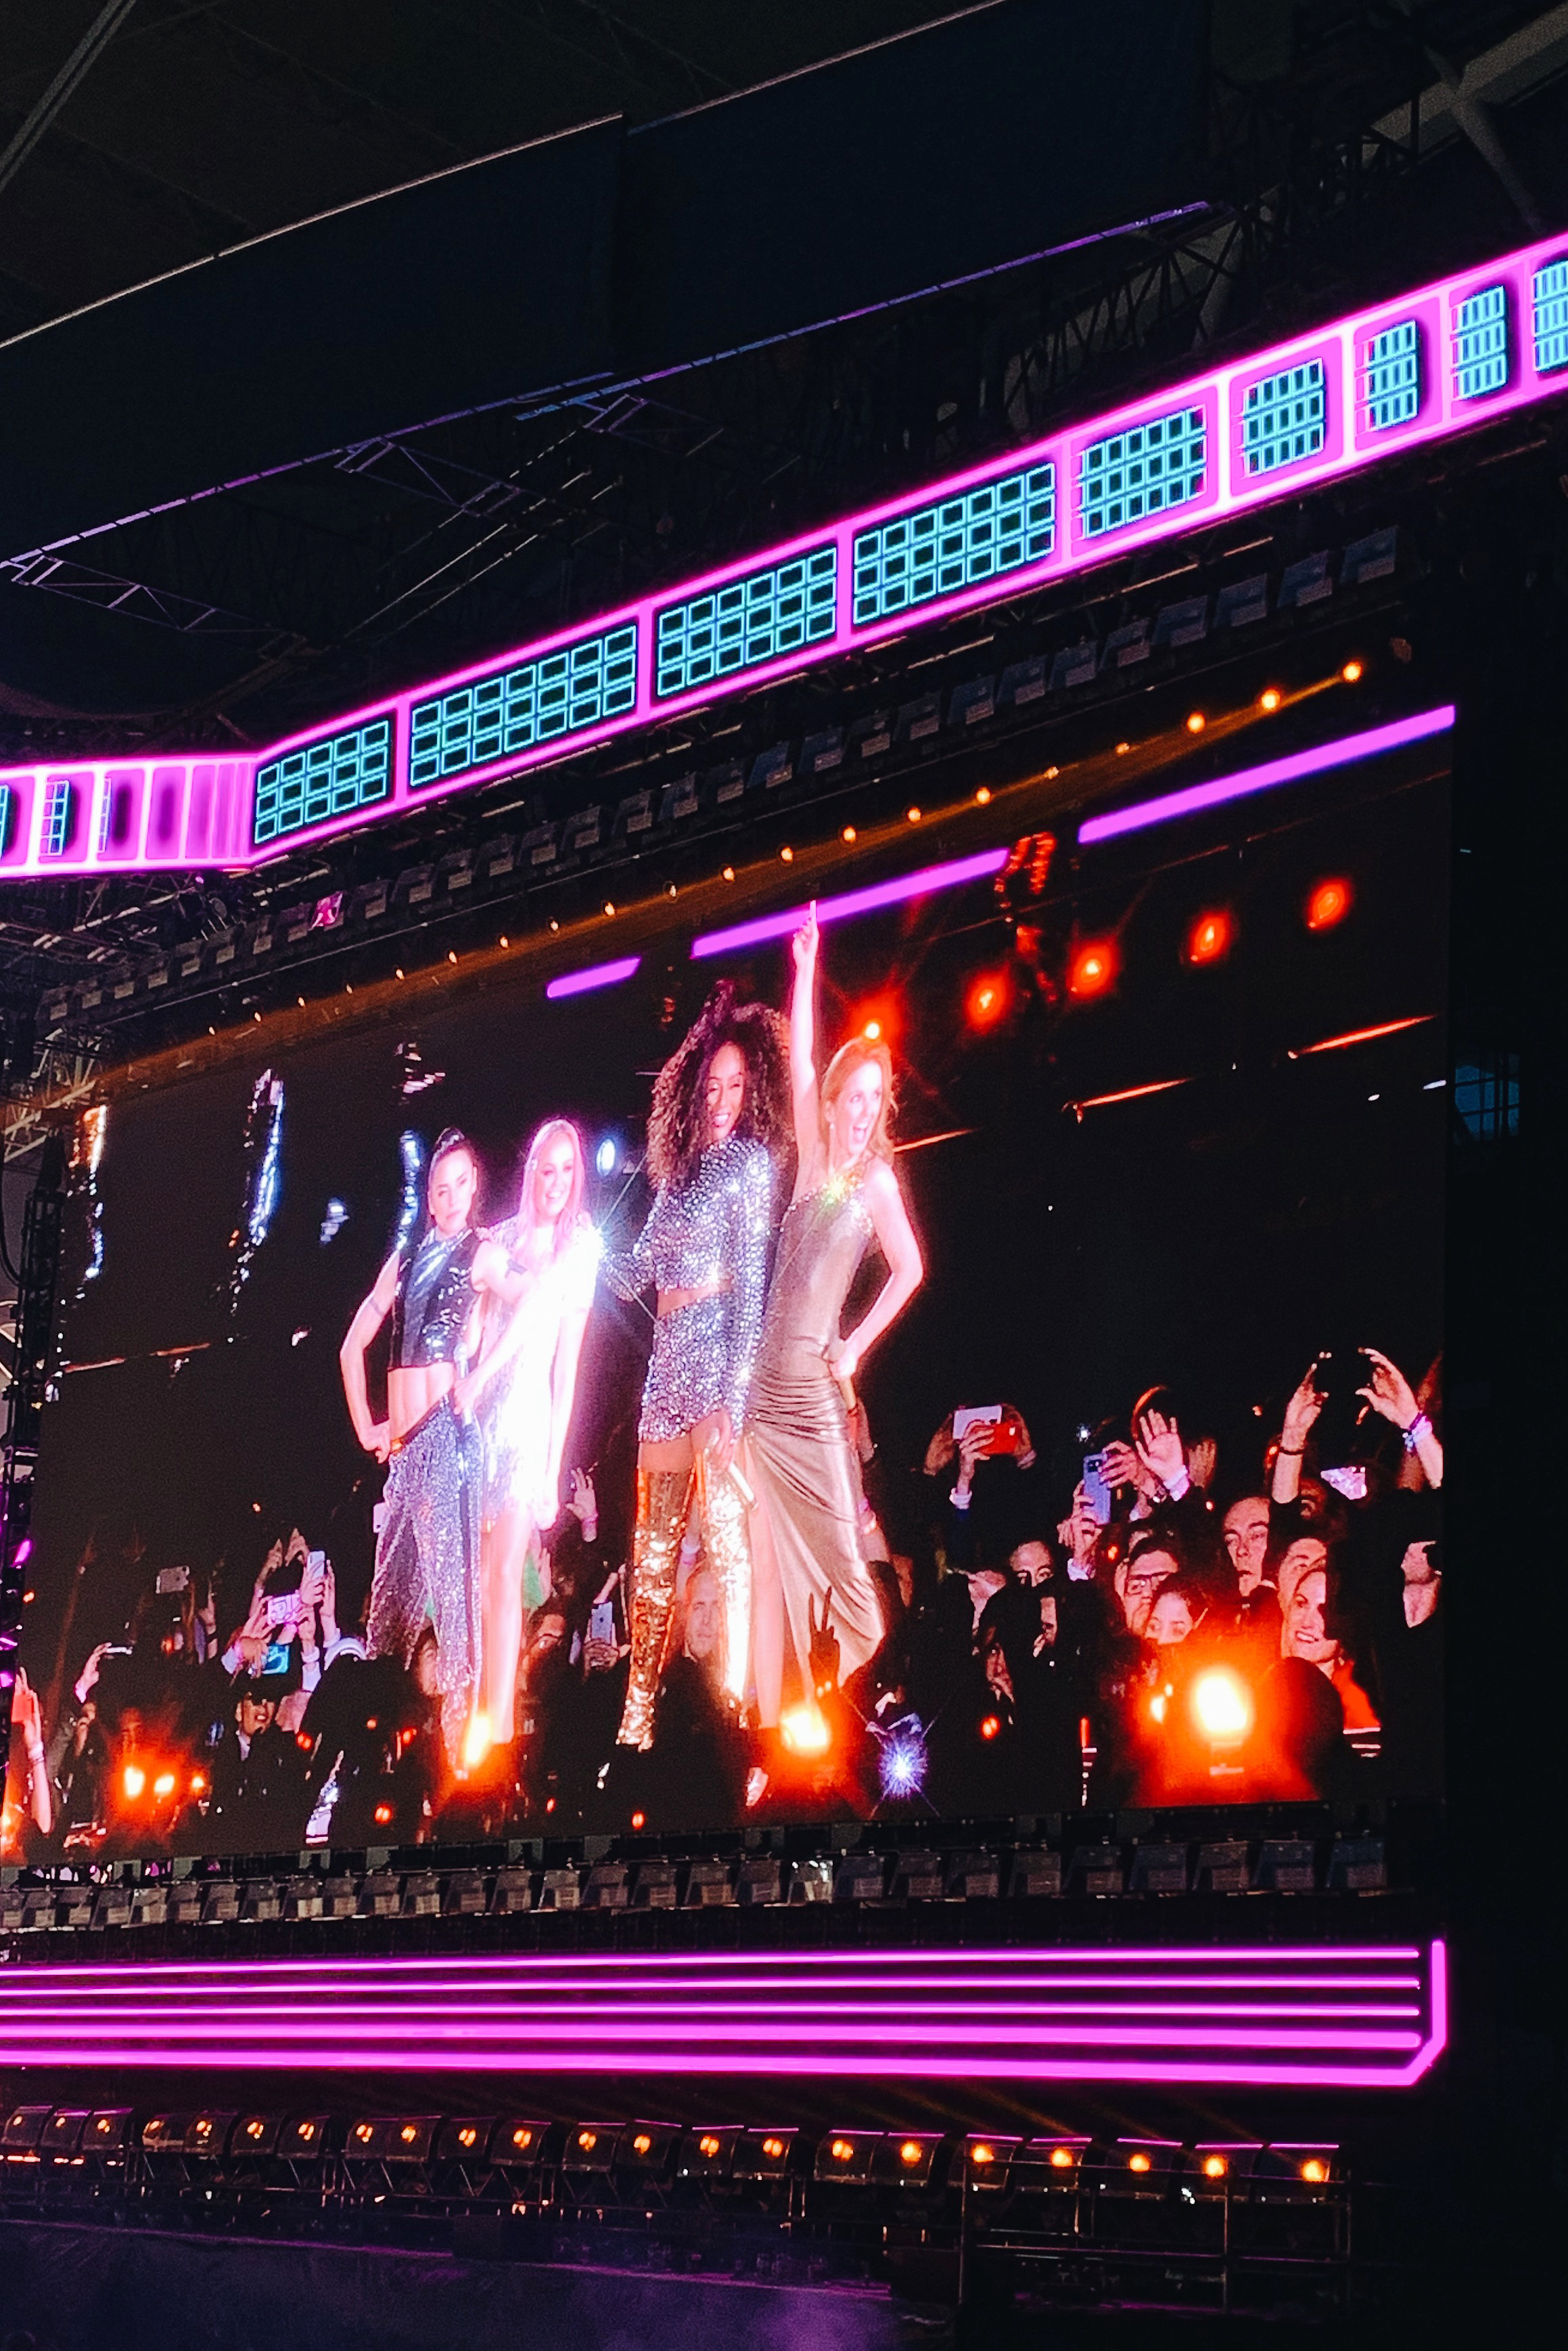 """- Once we got in, Lauren and I weren't all that fussed on seeing the support act, Jess Glynne, so we hung about chatting over a few drinks before we took our seats. When we did, I was in sheer awe at the size of the venue and it was incredible to watch it slowly pack out. With a crowd of 80,000 people, it was the biggest gig I've ever been to and the biggest gig I'll probably ever go to!Just before they came on stage, the show was introduced with the screens displaying, """"We welcome all countries of origin. All gender identities. All abilities. All ages. All sexual orientations. All races. All religions & beliefs. Welcome to Spice World"""" and then showed an array of flags from all different countries. It gave me goosebumps and I felt as if my heart could've exploded! It was so empowering and made me feel so proud to be a Spice Girls fan. Immediately after, the crowd roared as they opened with Spice Up Your Life and I felt like I was nine years old again!I was kind of expecting a nostalgia trip back to the '90s with the super short dresses, crop tops and platform shoes they used to perform in, but I suppose they needed to feel a little more comfortable on stage being in their forties now! Geri even poked fun at how much older they all were, but that they were doing this all for us! While their costumes were modernised and more grown up, it still felt like them and there were still a few outfits to take us back to the good old days. Geri's iconic Union Jack dress got a classy update as it became floor-length, Mel B wore plenty of leopard print and the outfits they wore while performing the closing song, Wannabe, were the same ones they wore in the music video, only more jazzed up and blingy!"""